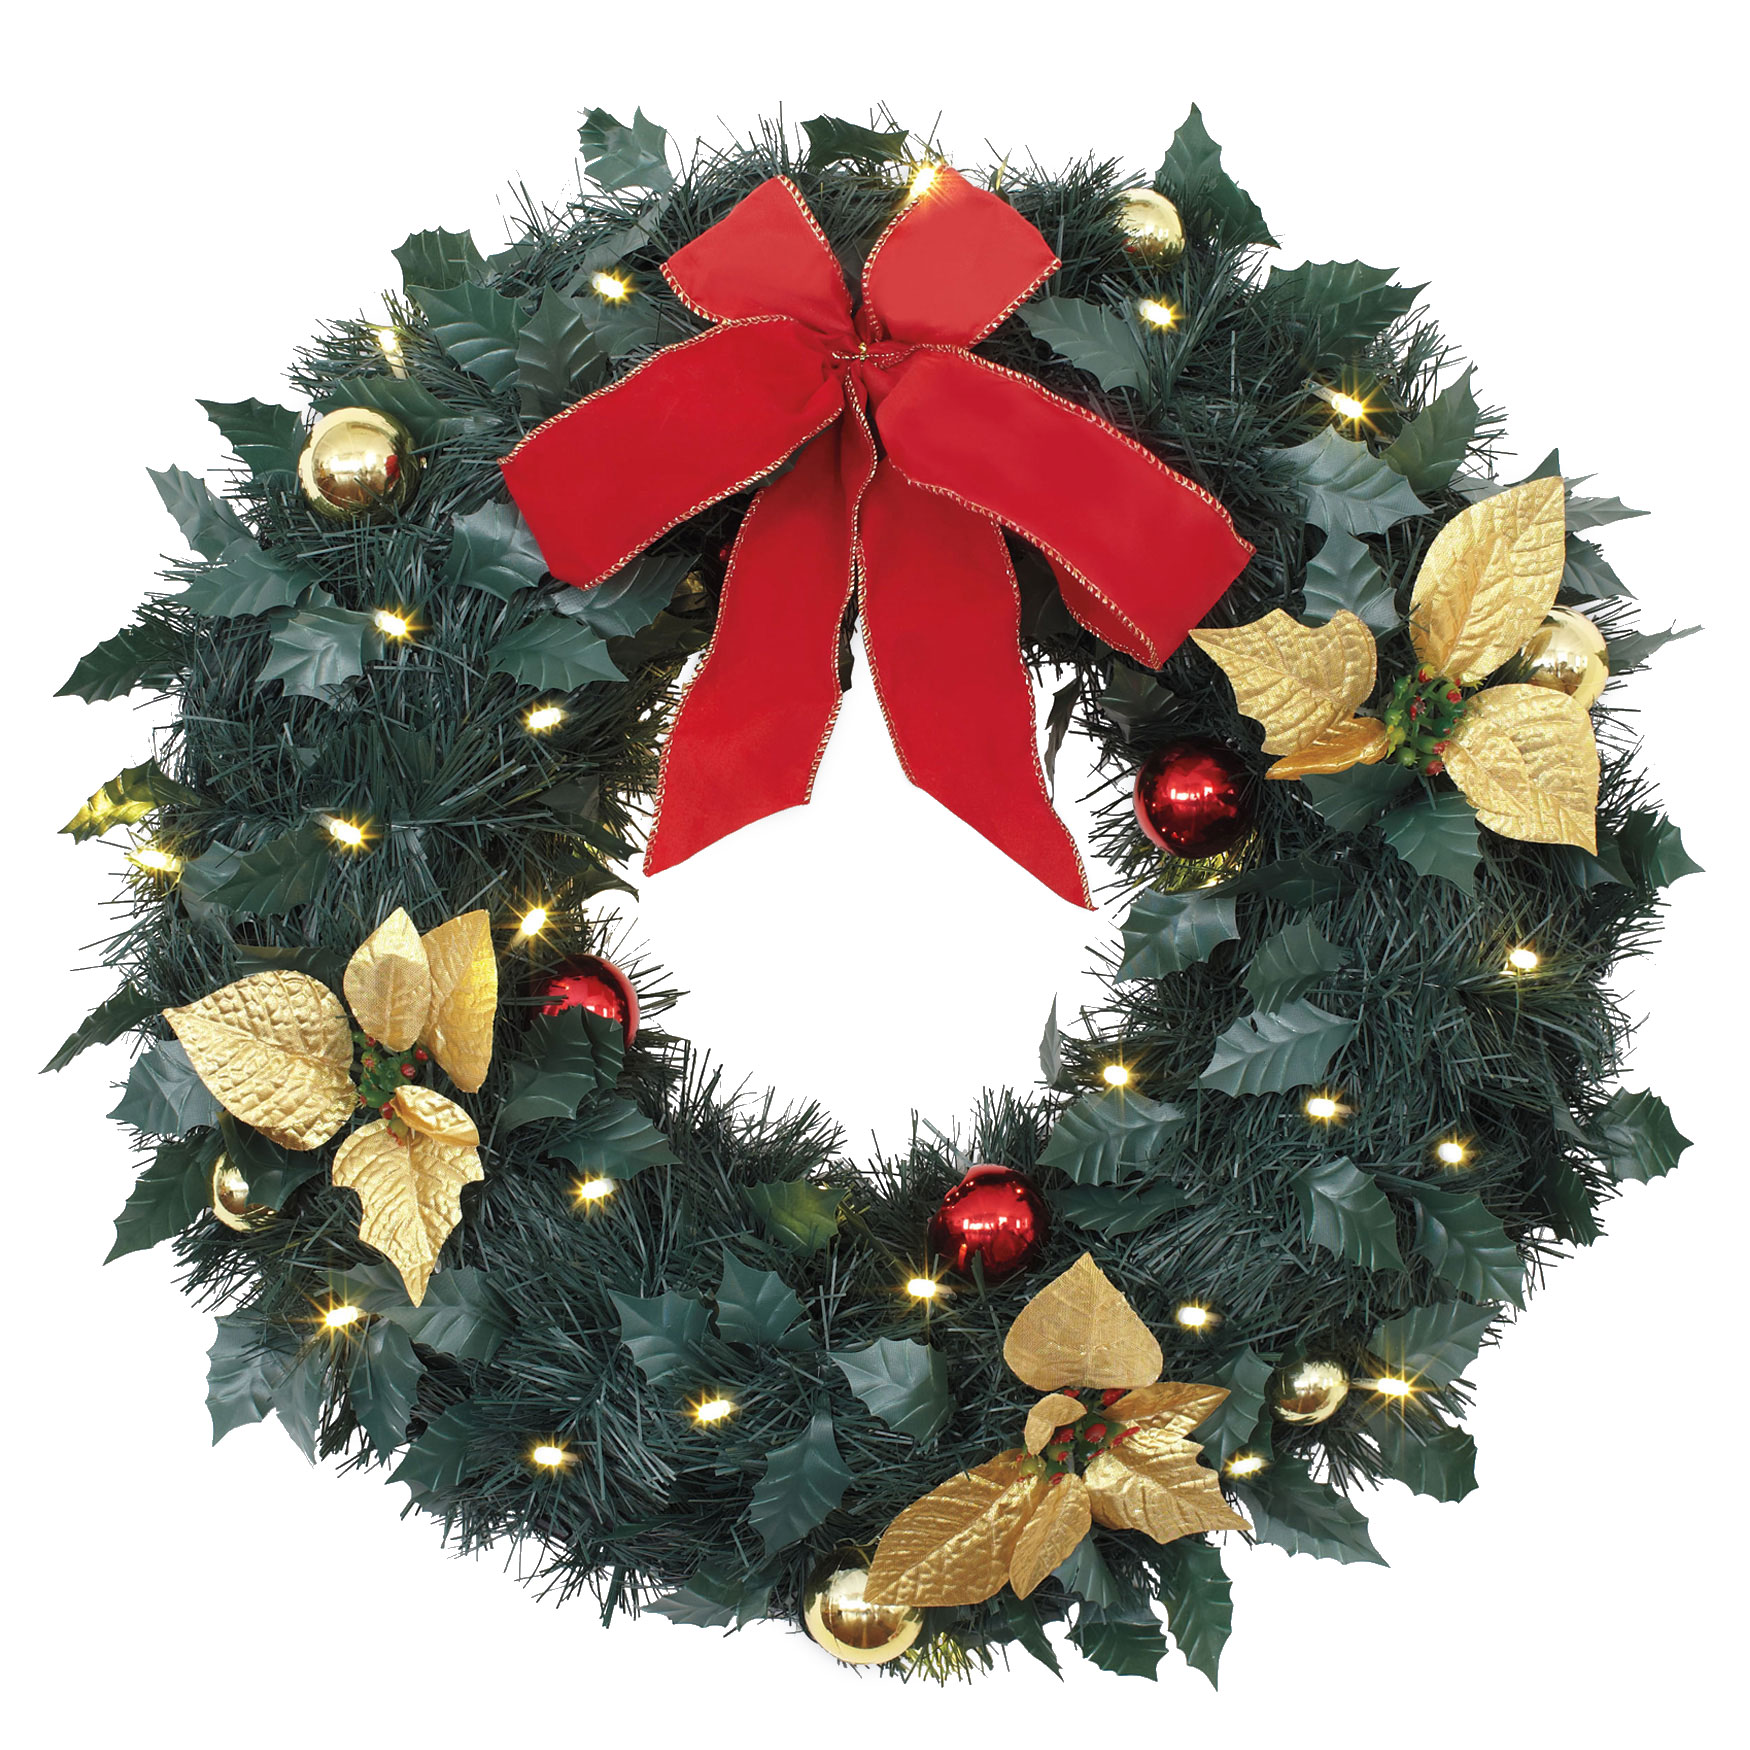 18' Cordless LED Christmas Wreath, RED GOLD